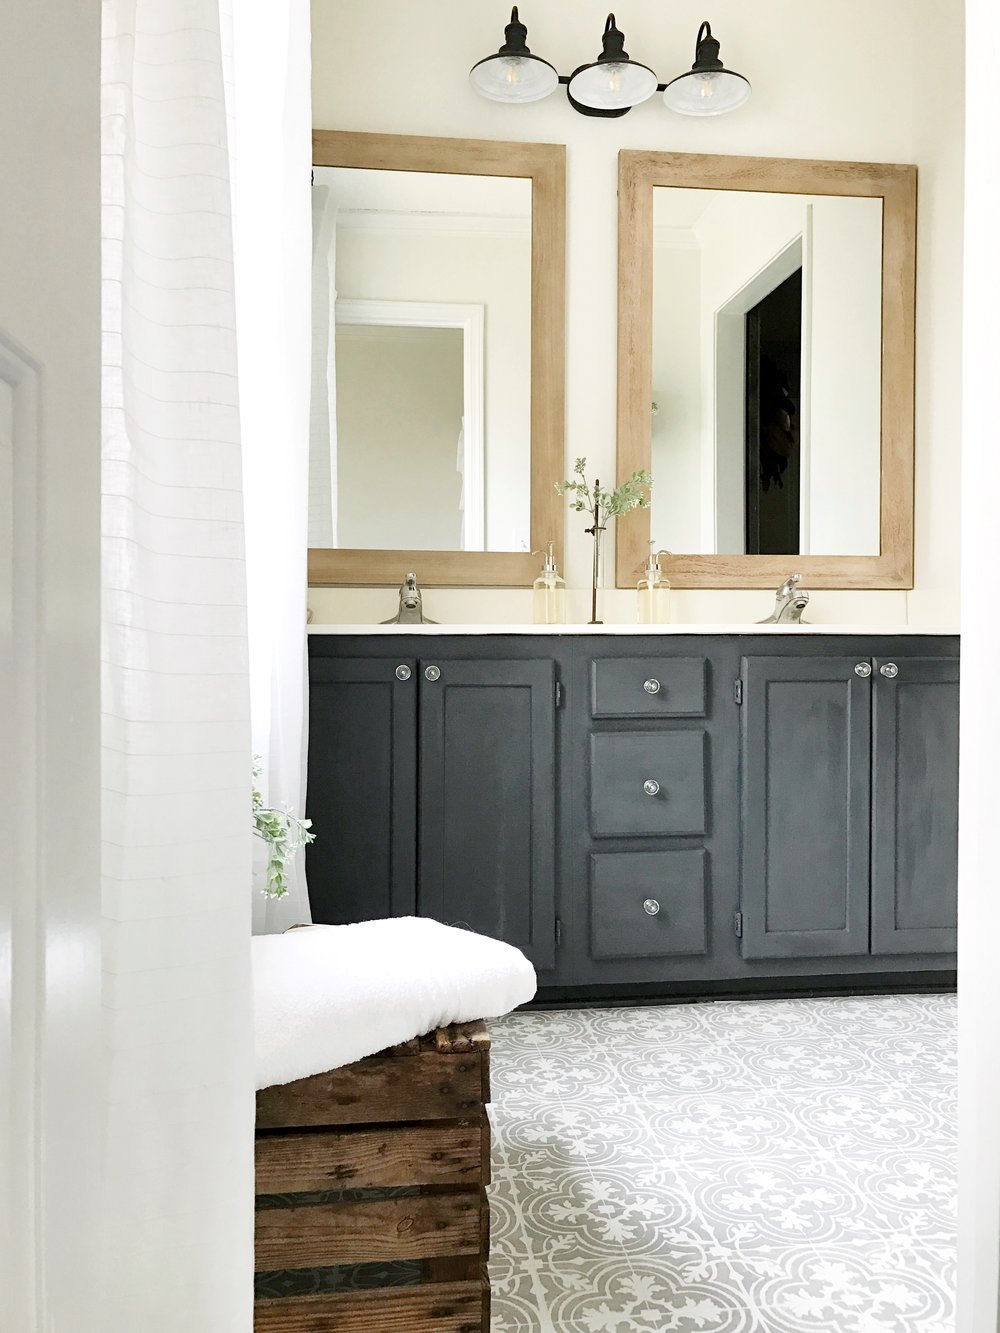 Full Tour- Painted Bathroom Vanity for a Weekend Budget Friendly Master Bathroom Makeover- By Plum Pretty Decor and Design